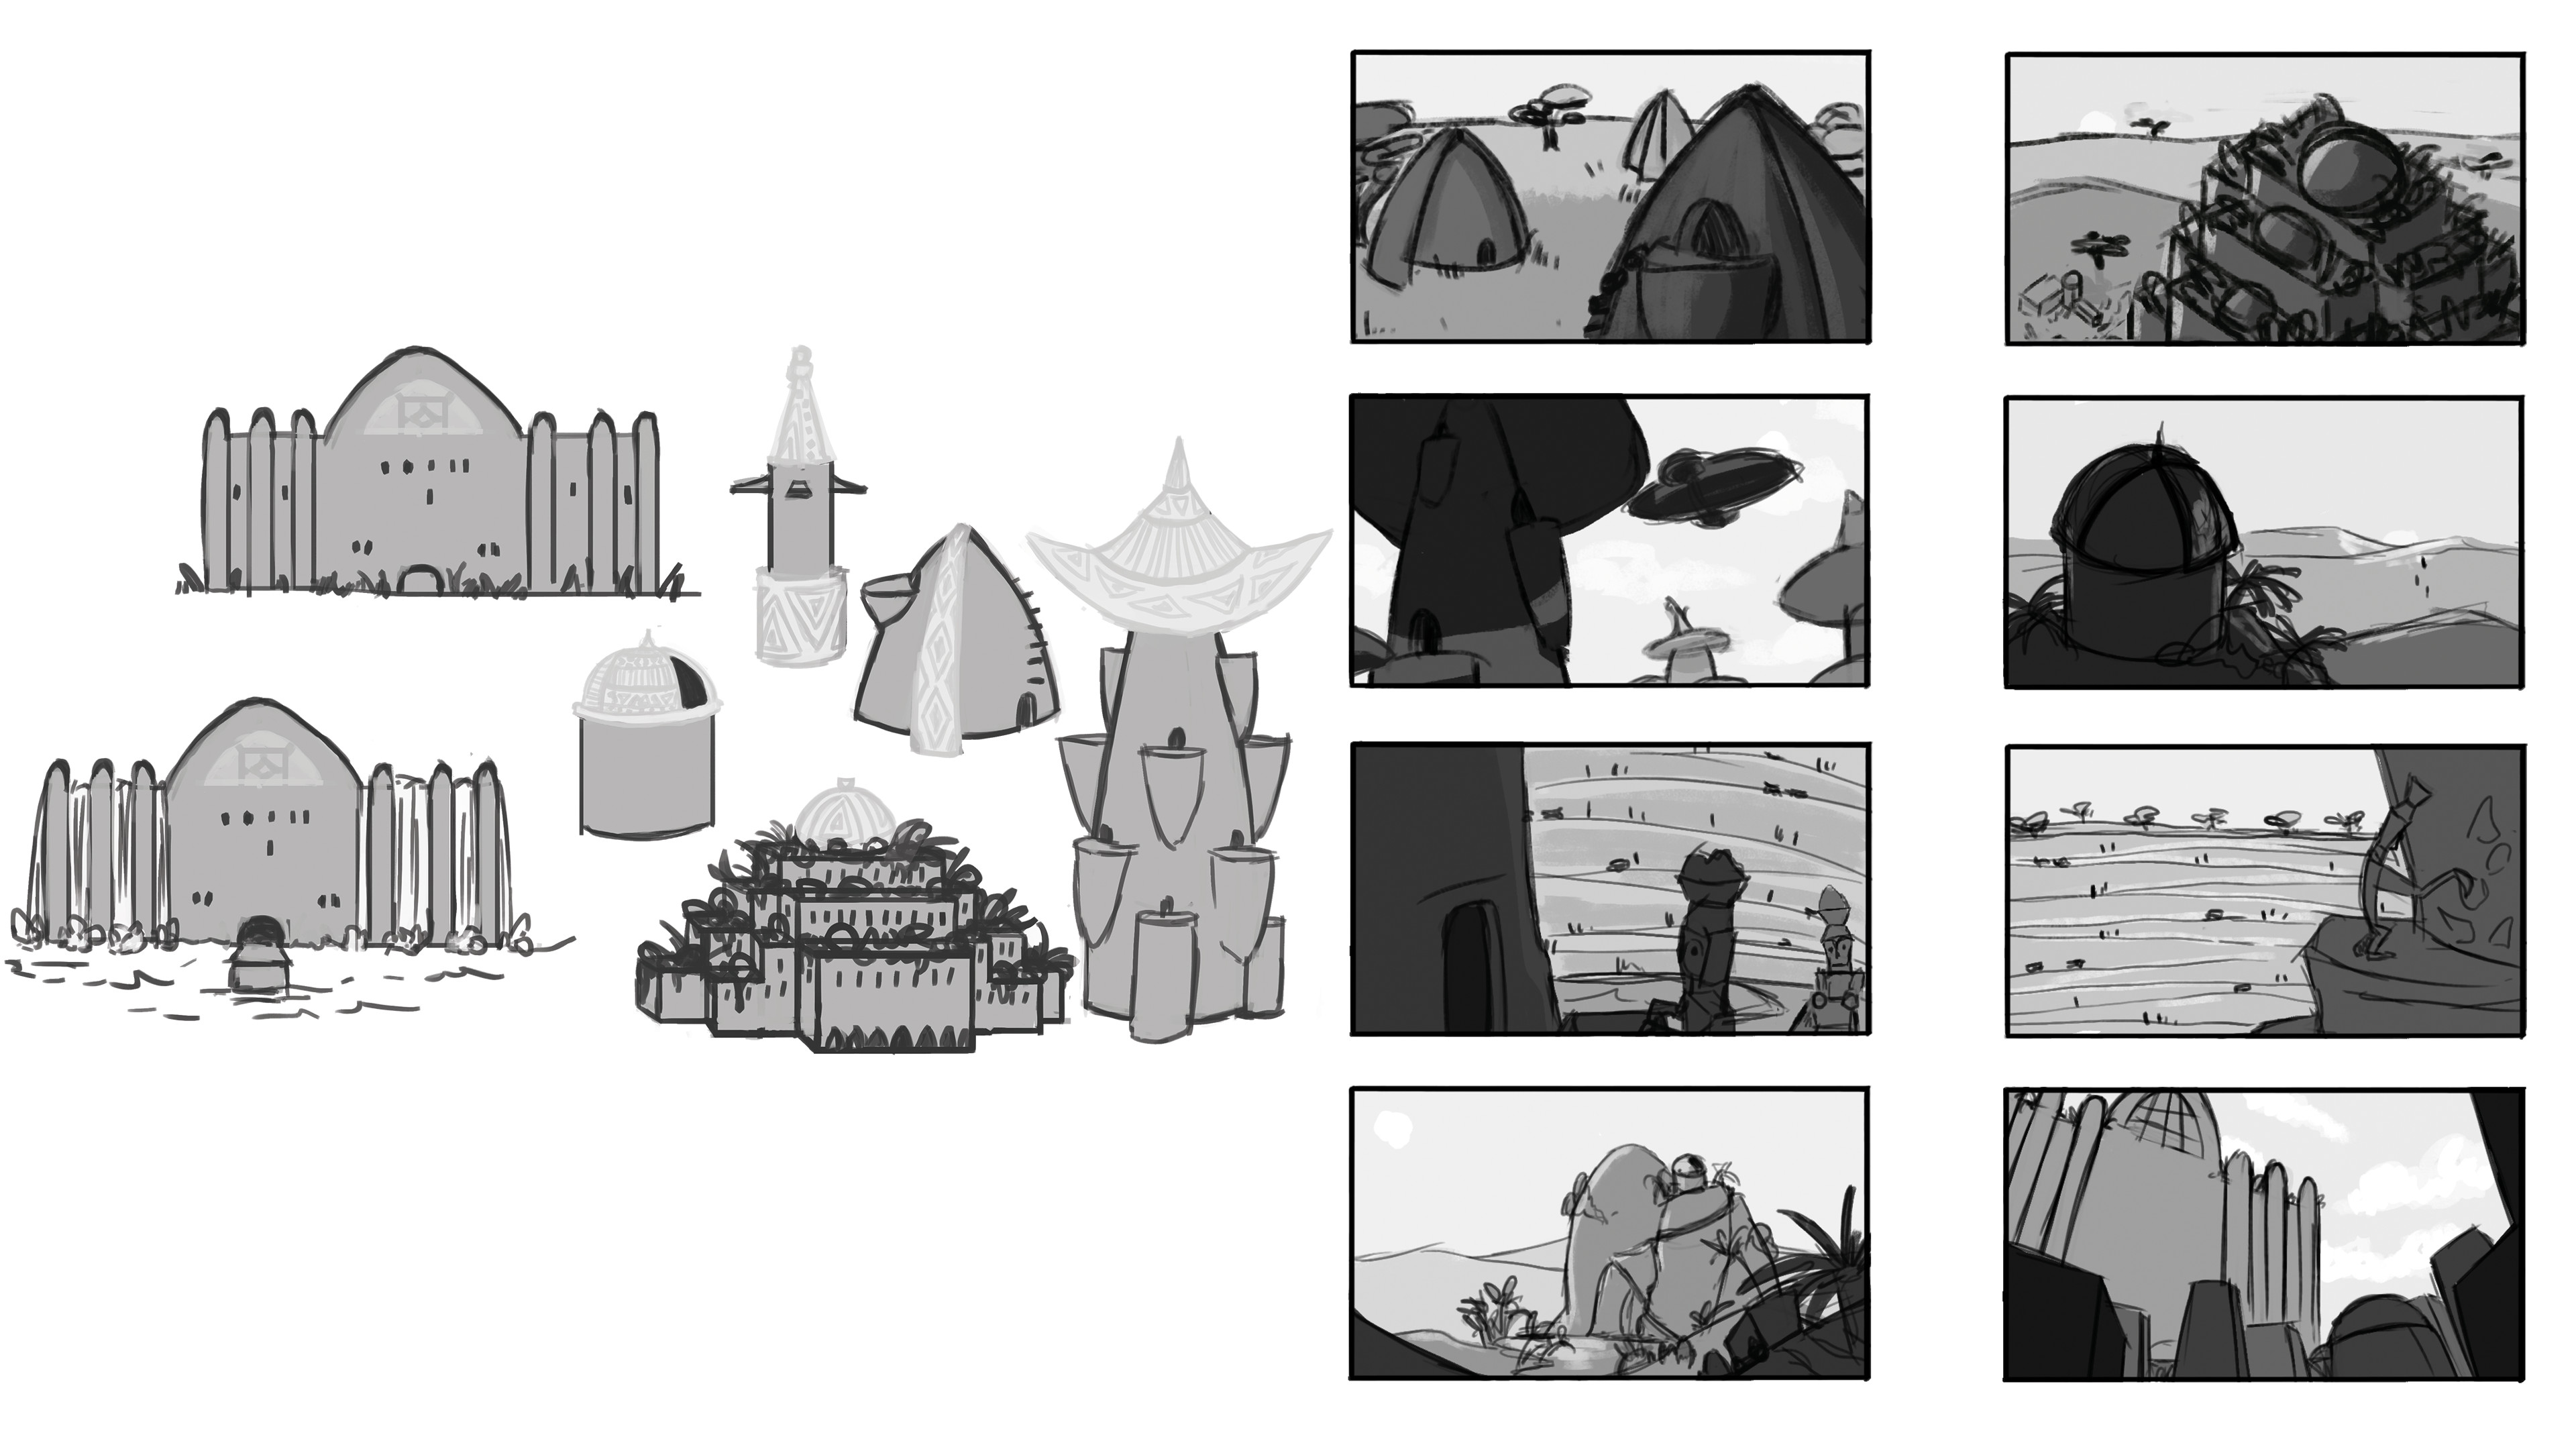 Tumbnails and Buildings concept